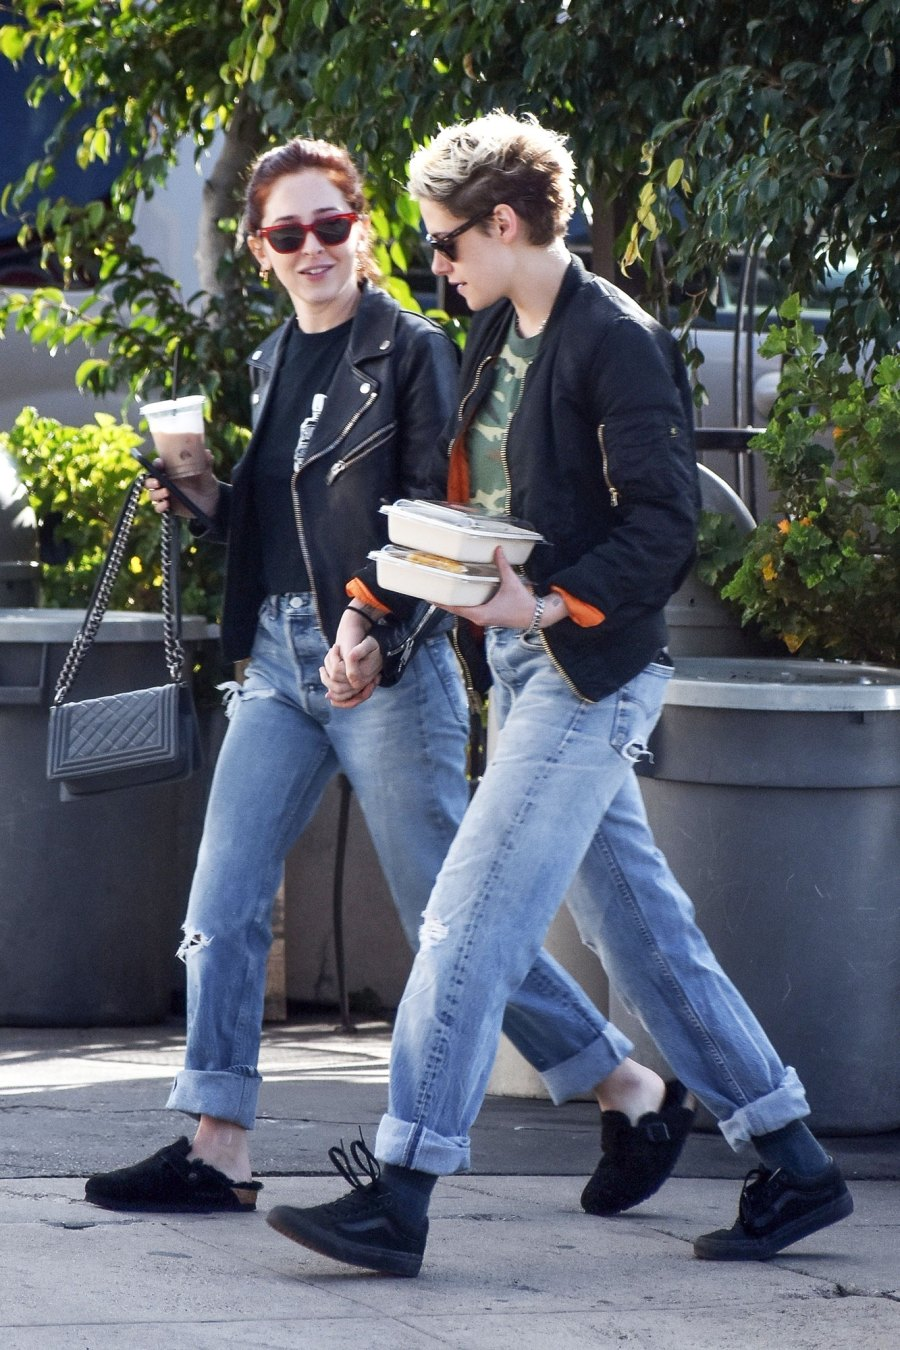 Kristen Stewart Sparks Stella Maxwell Split Rumors After Holding Hands With Mystery Woman